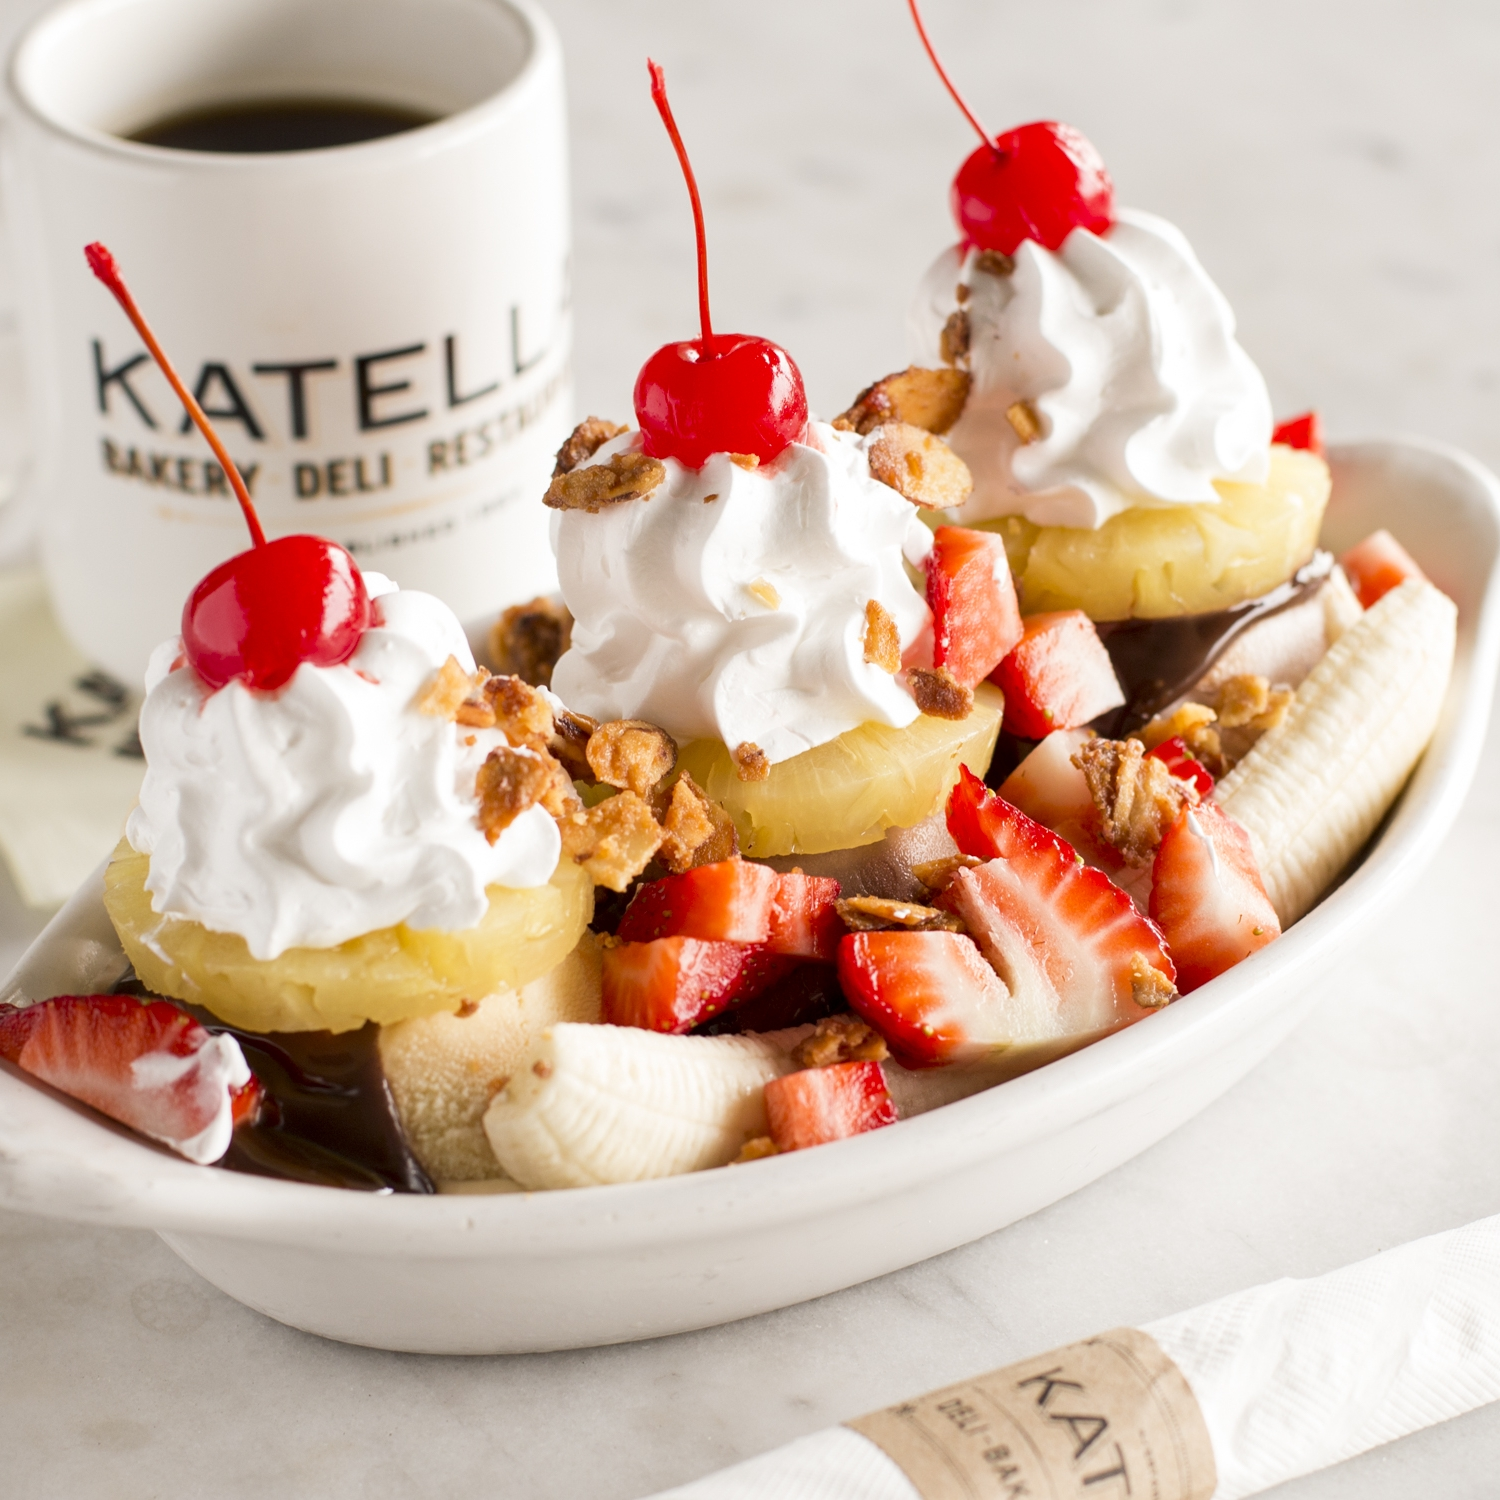 Katella Restaurant famous banana split with a cup of coffee